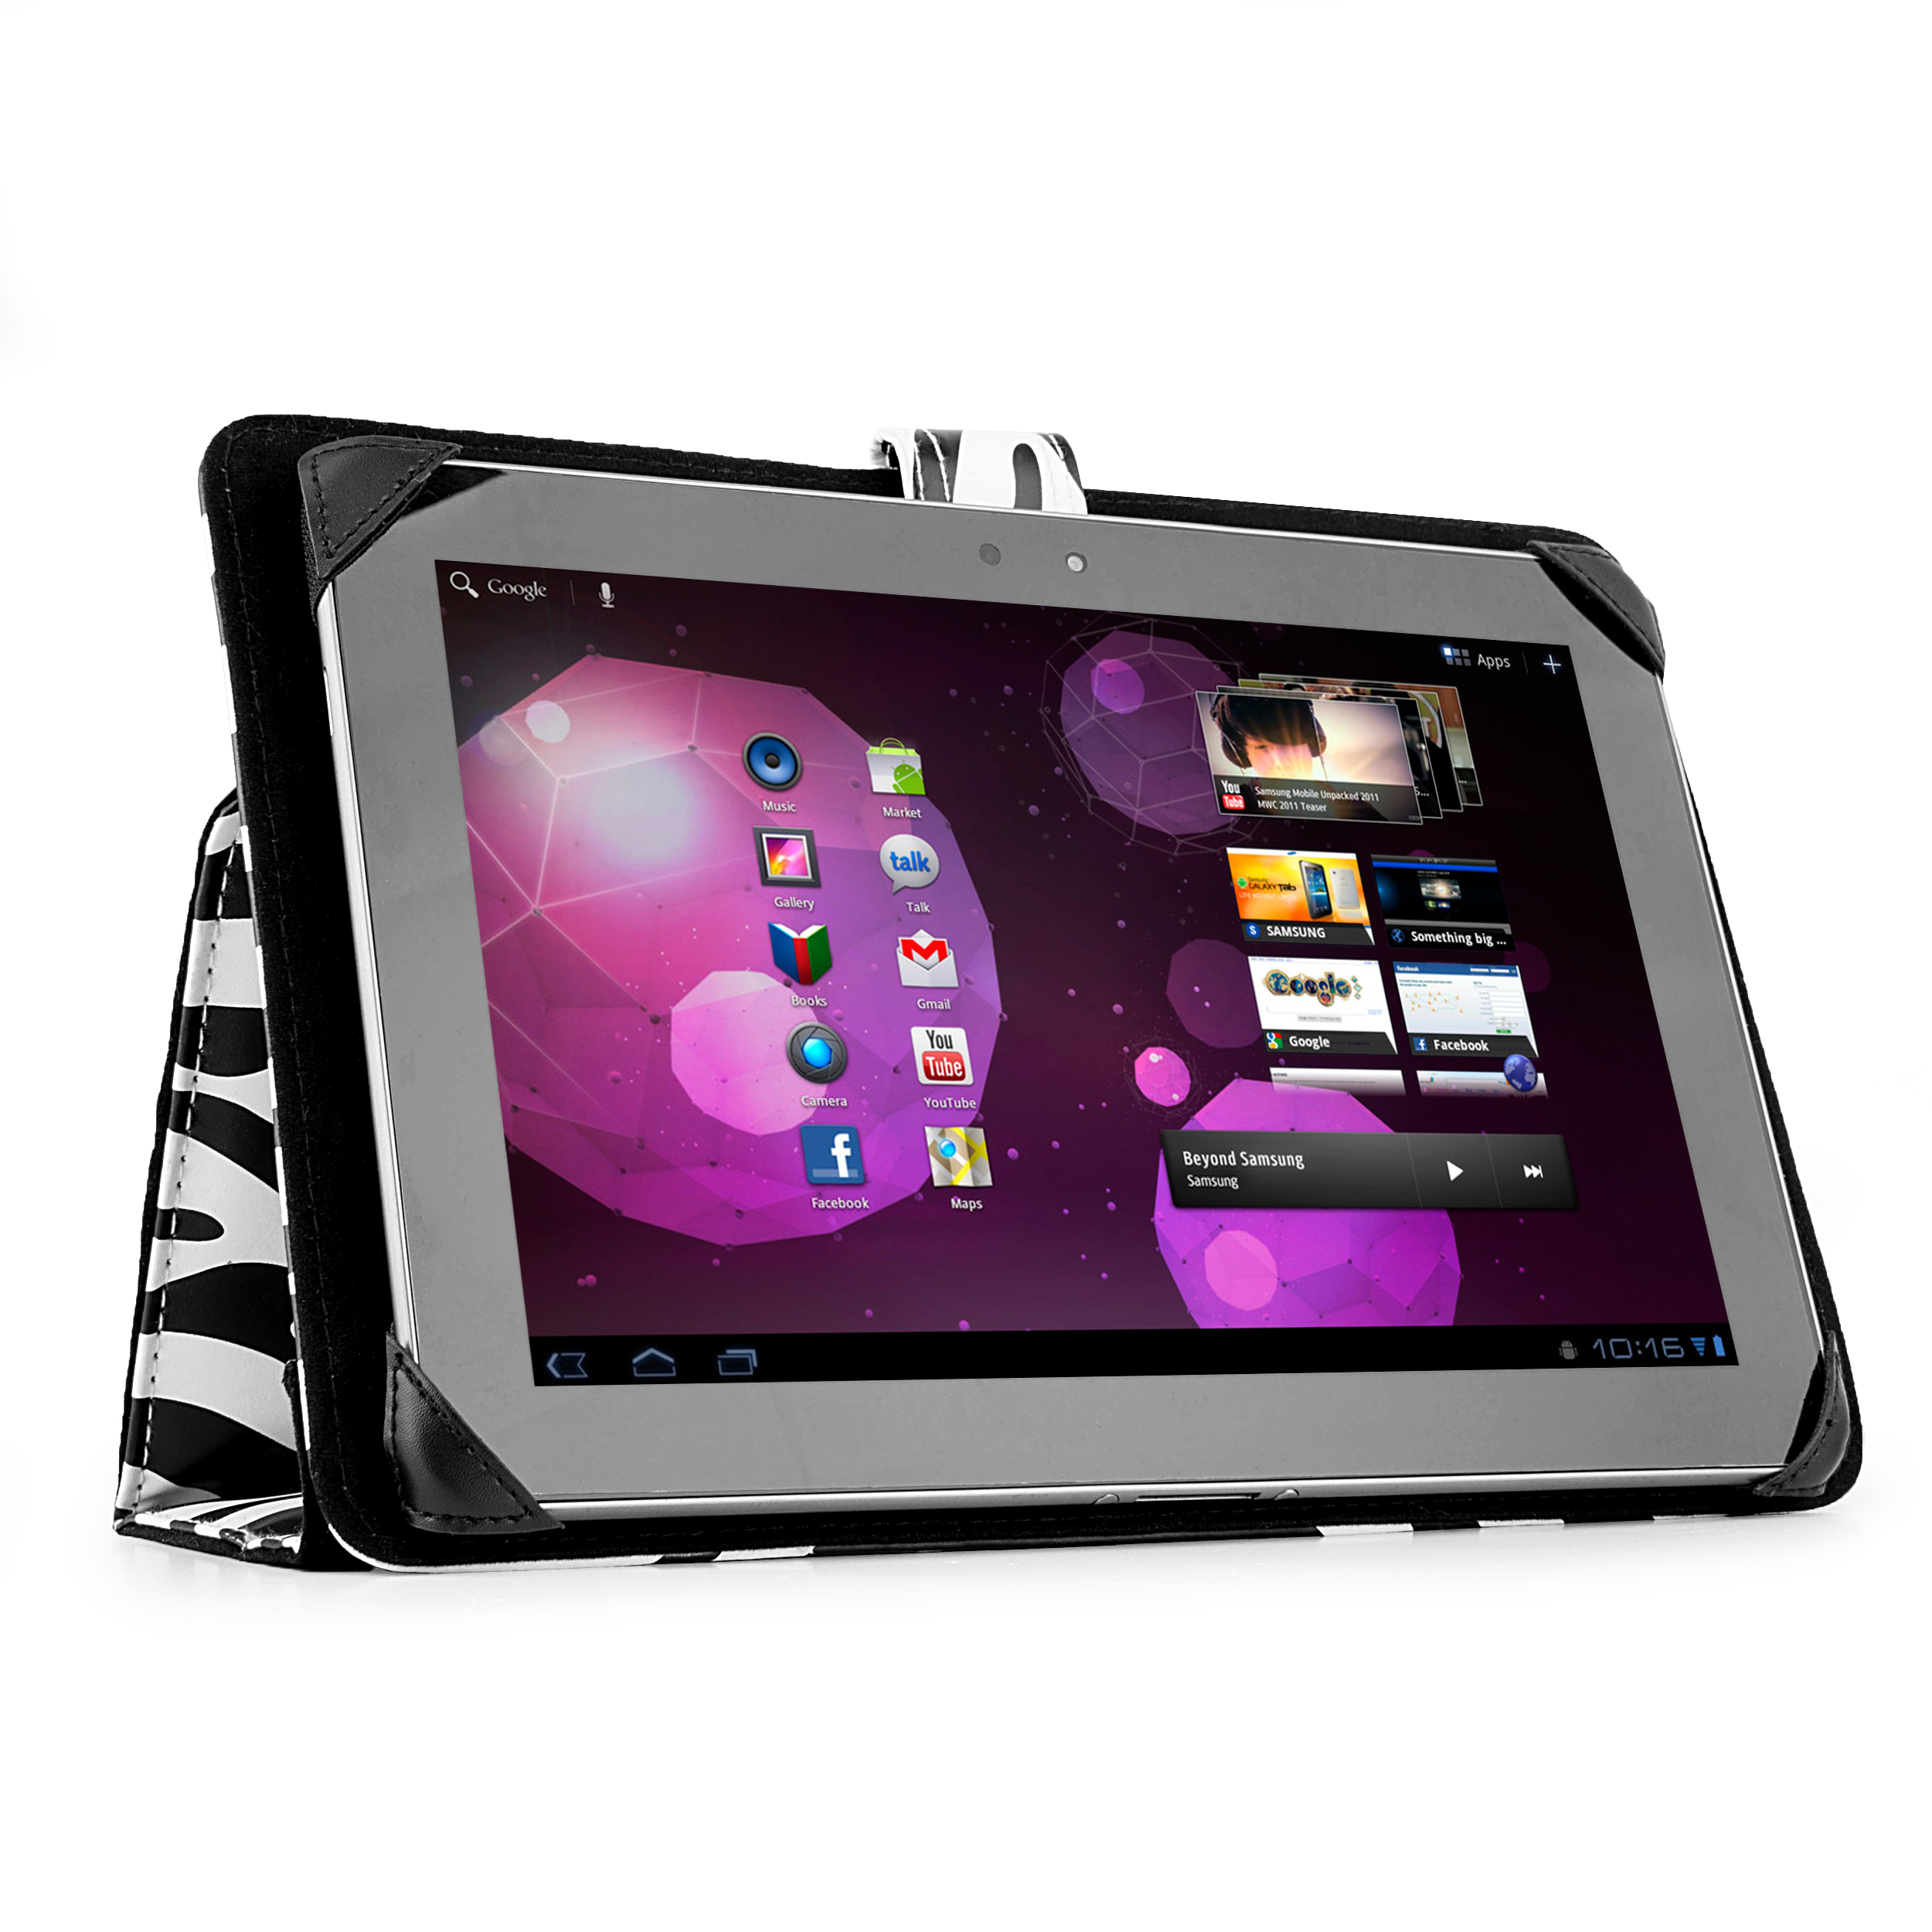 Soho Tablet Case (Black/White Zebra)